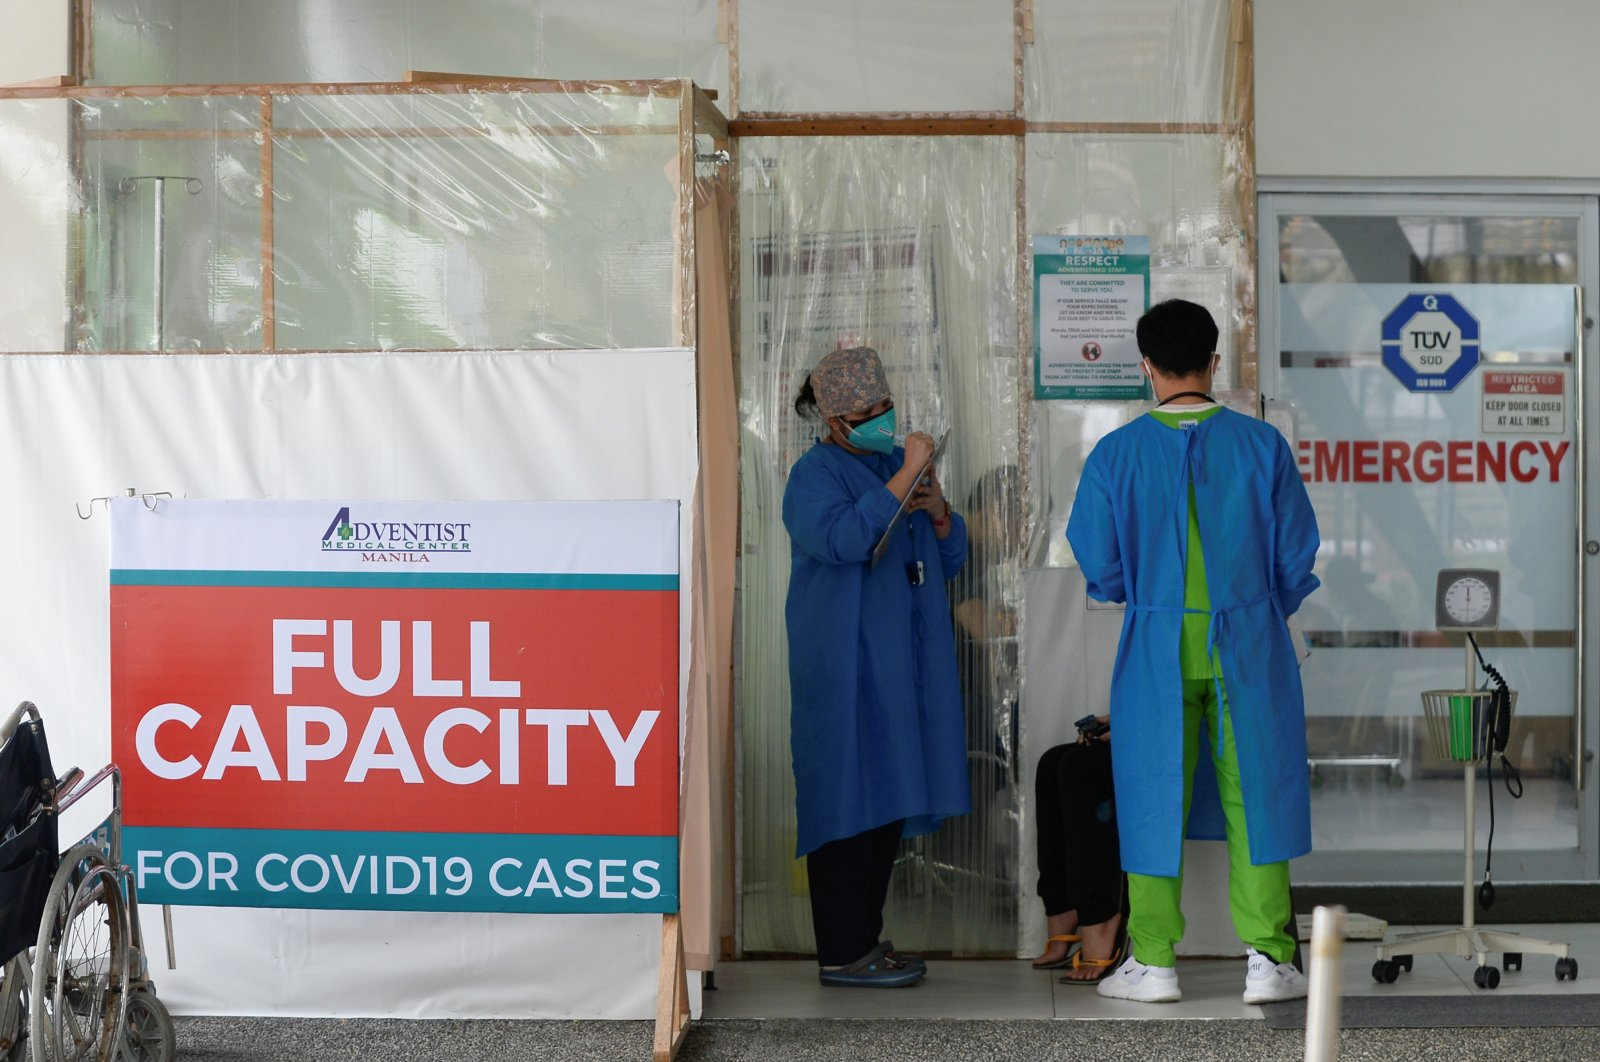 Health workers assess a patient outside the emergency room at the Adventist Medical Center, where a sign indicating that the hospital's coronavirus facility is at full capacity is displayed, in Pasay, the Philippines, April 9, 2021. (Reuters Photo)